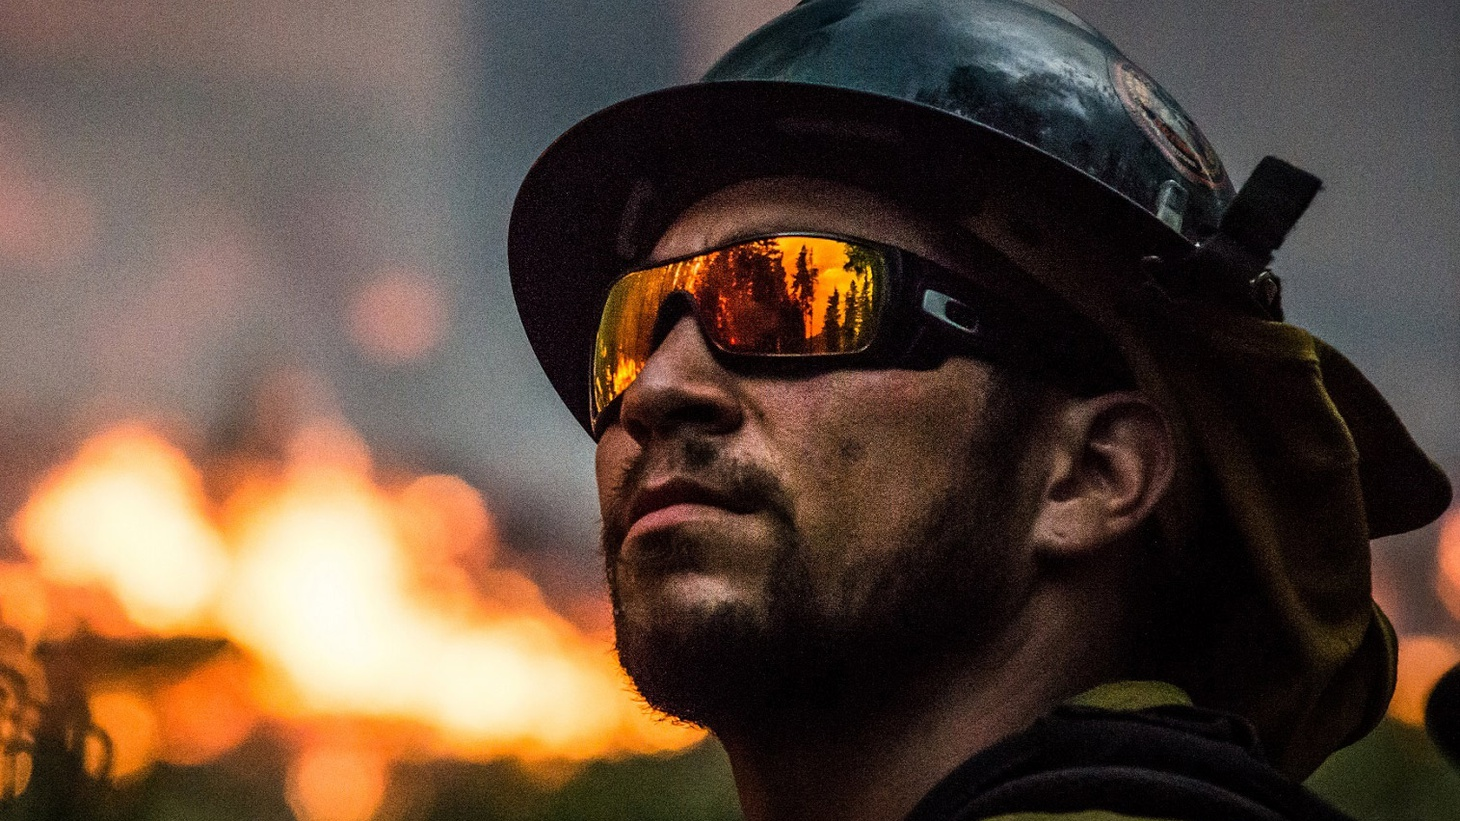 """The new film Only the Brave, starring James Brolin, dramatizes the true story of a wildfire in Arizona in 2013. And it coincides with a disturbing reality for the people who fight the increasing number of wildfires in this country: """"Suicides are astronomical."""""""